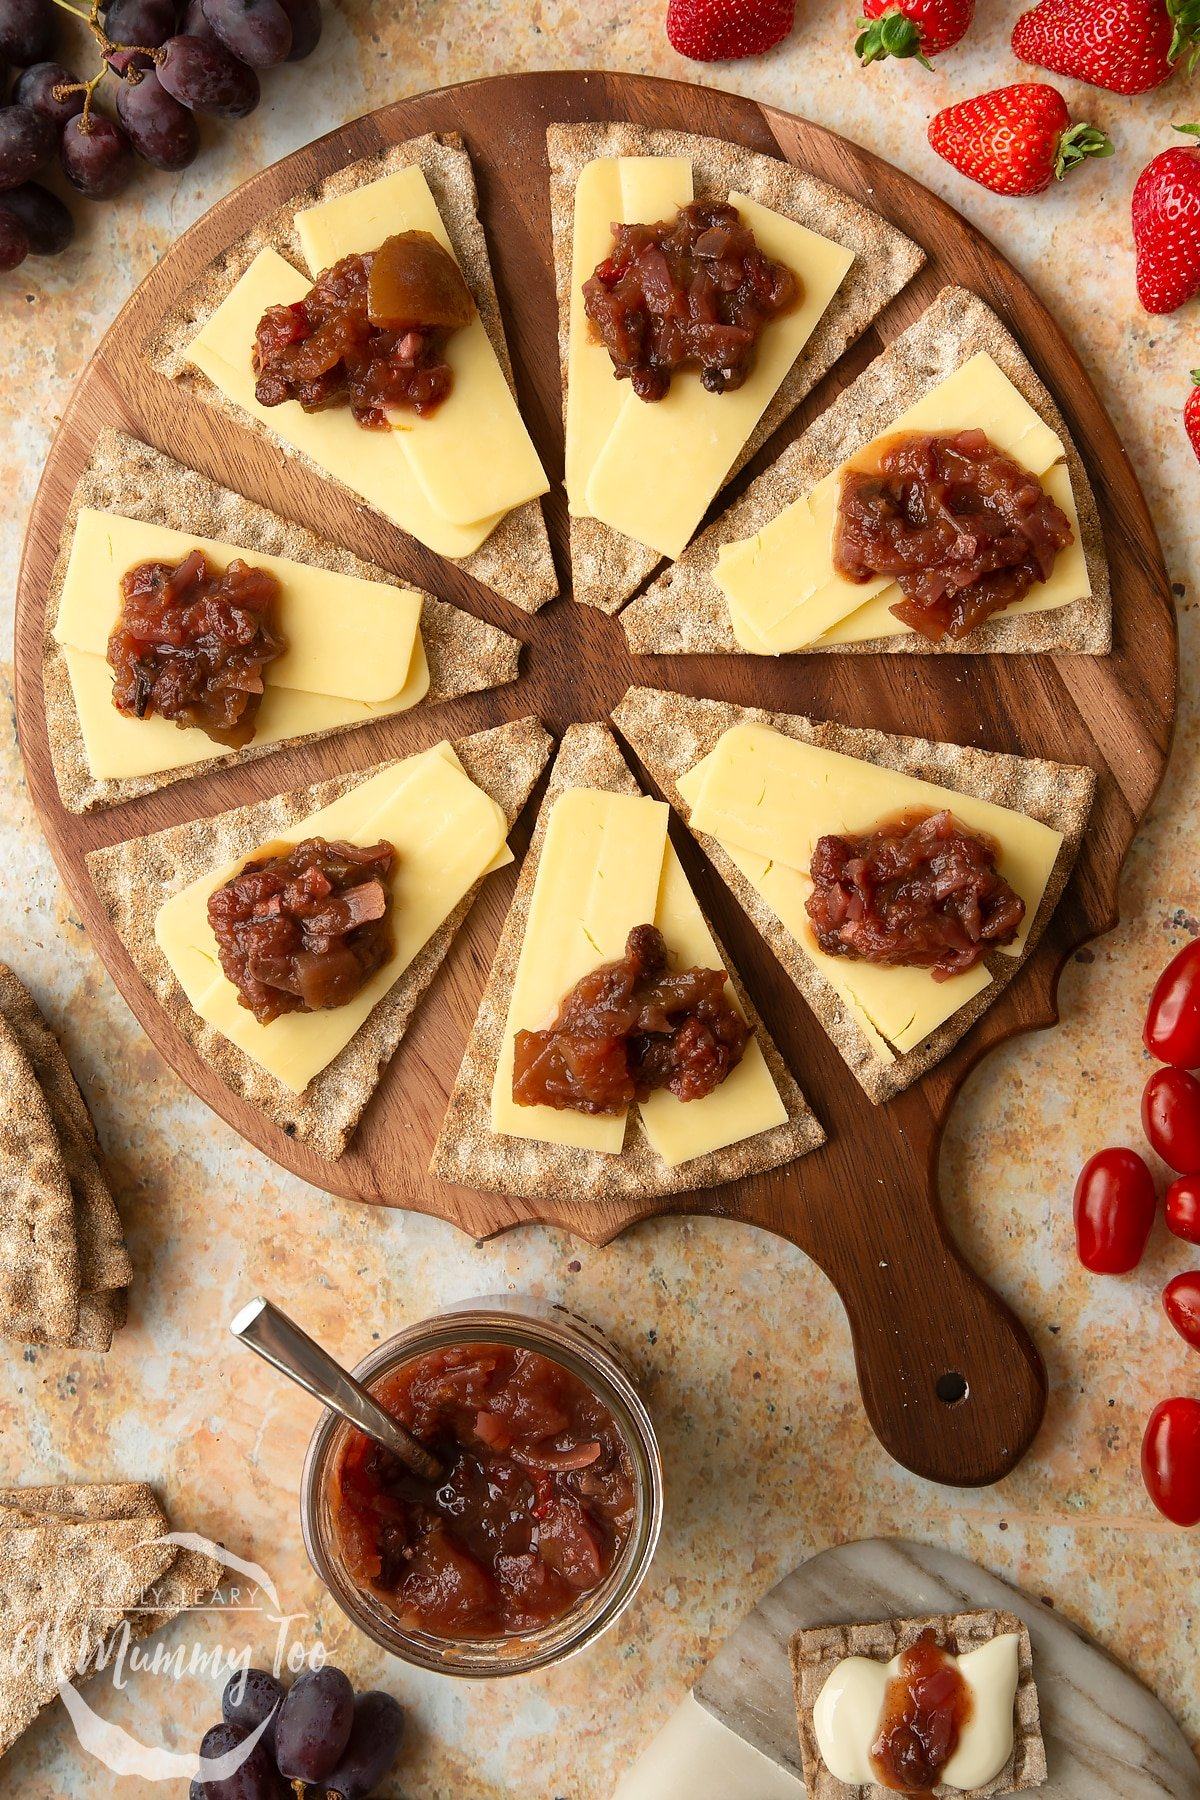 Triangular crackers topped with cheese slices and a fruit chutney recipe on a wooden board.